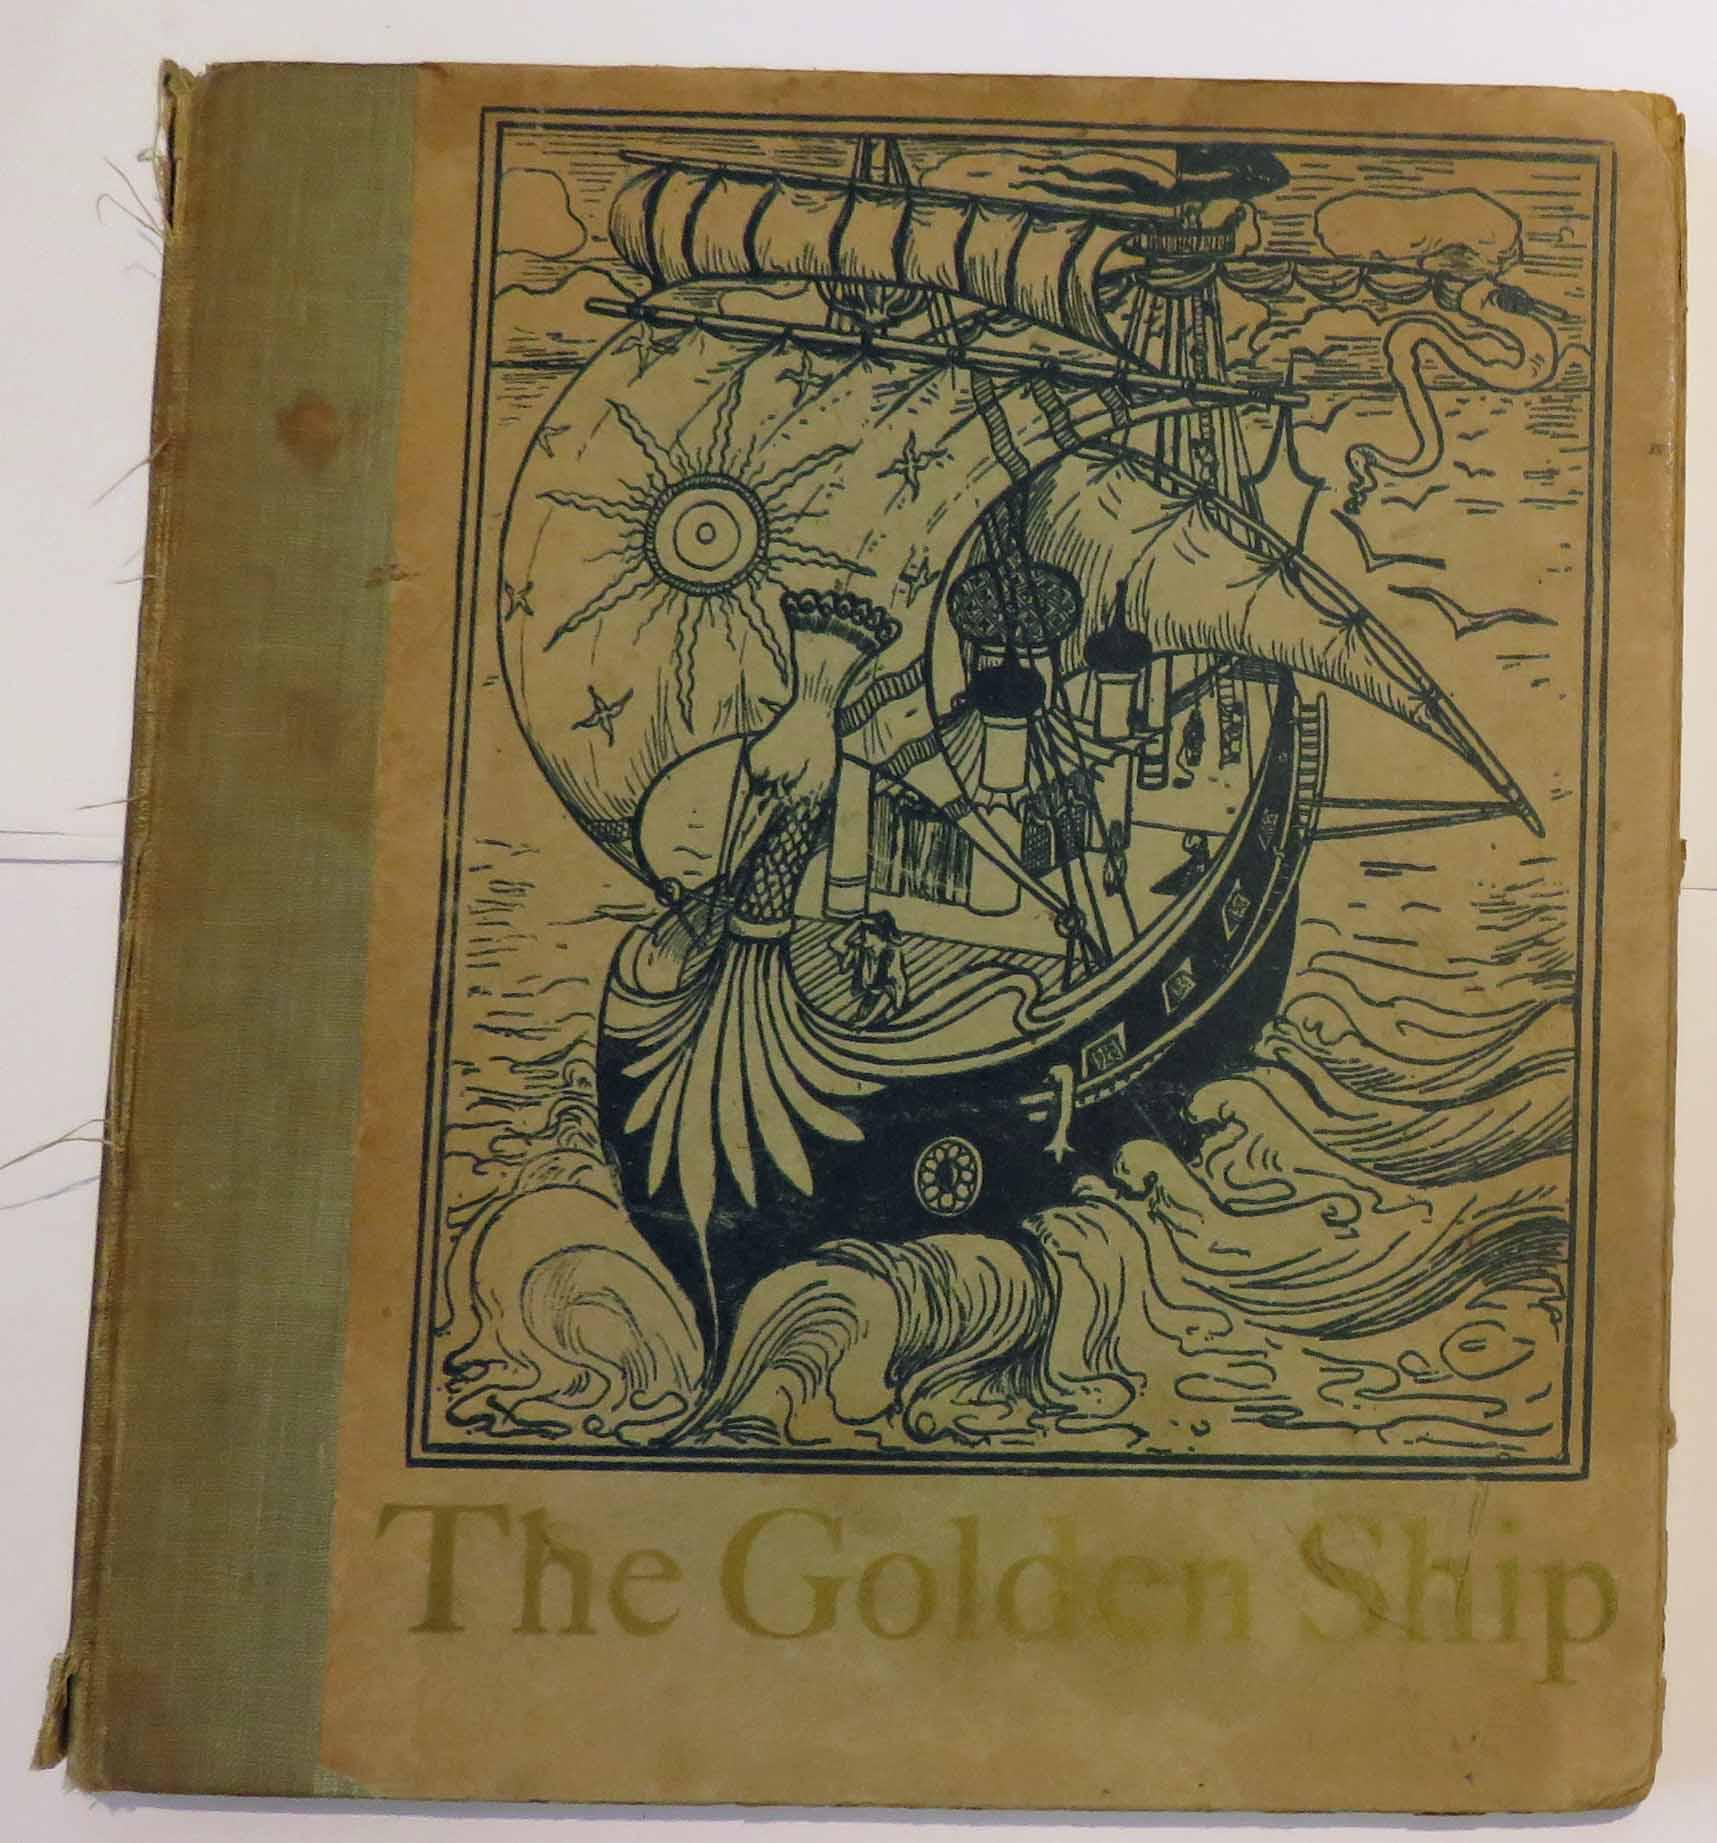 The Golden Ship And Other Tales